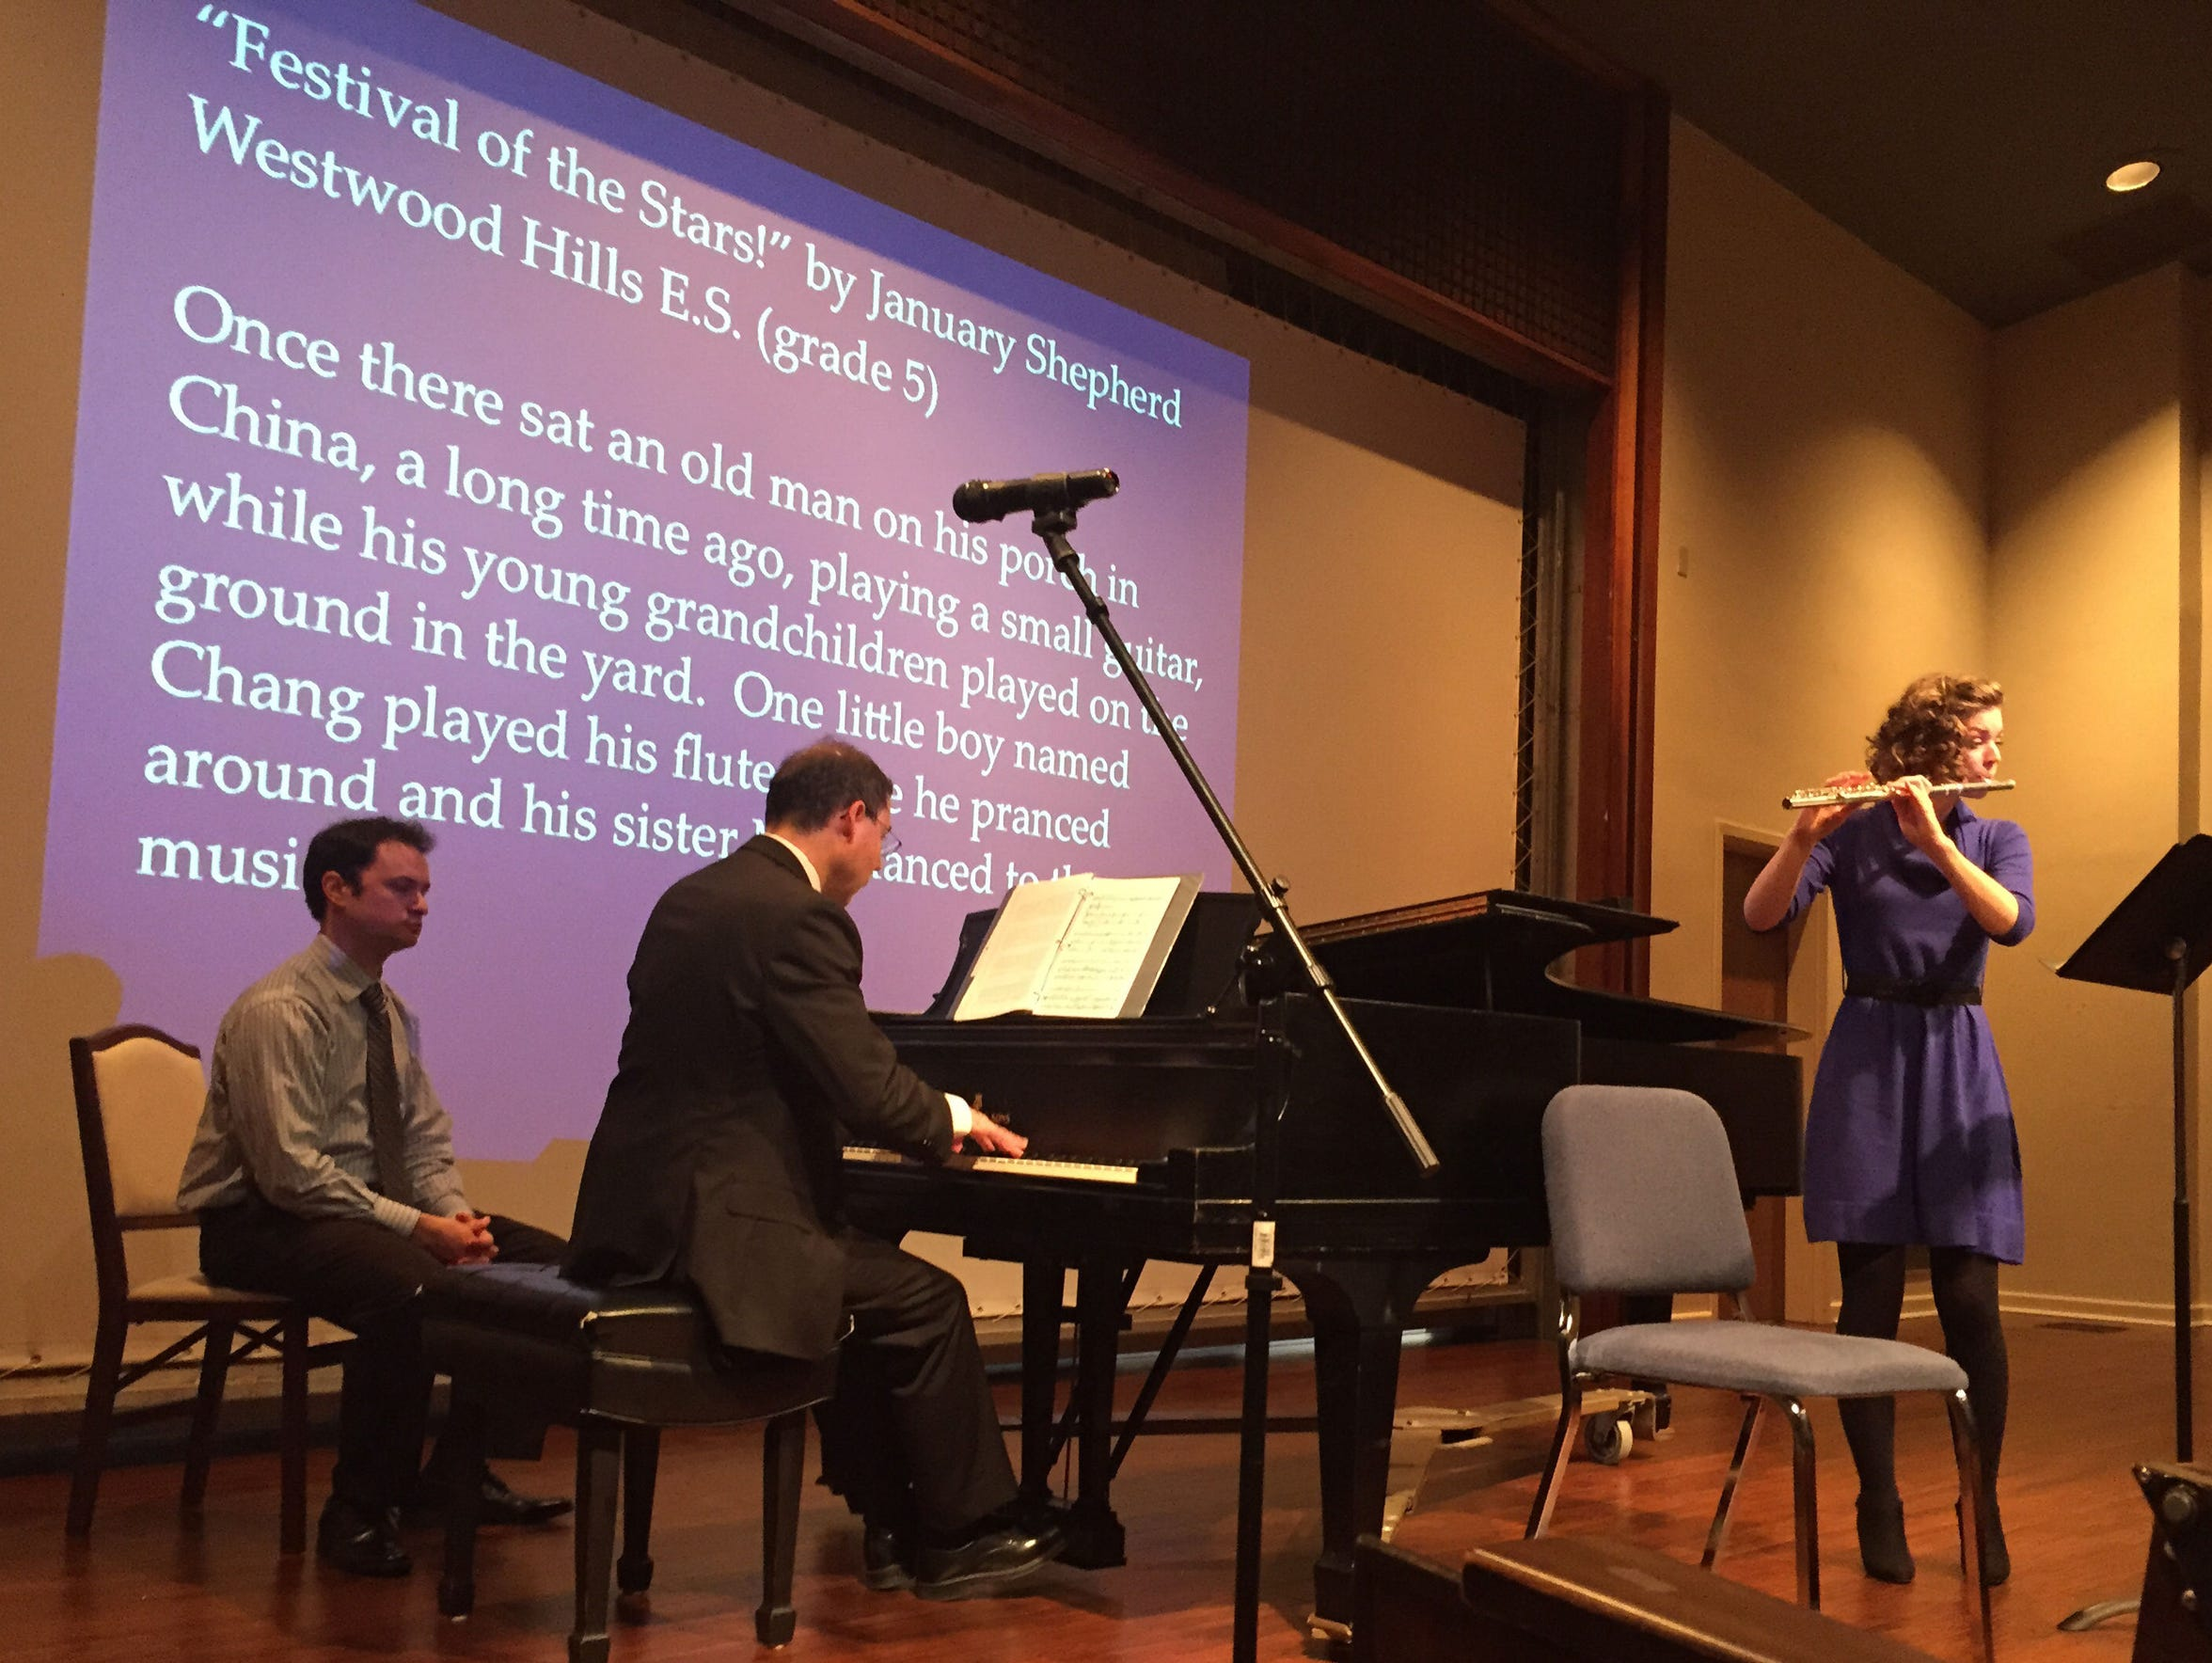 Ryan Hoffman on cello, Luis Gonzales on piano and Clara